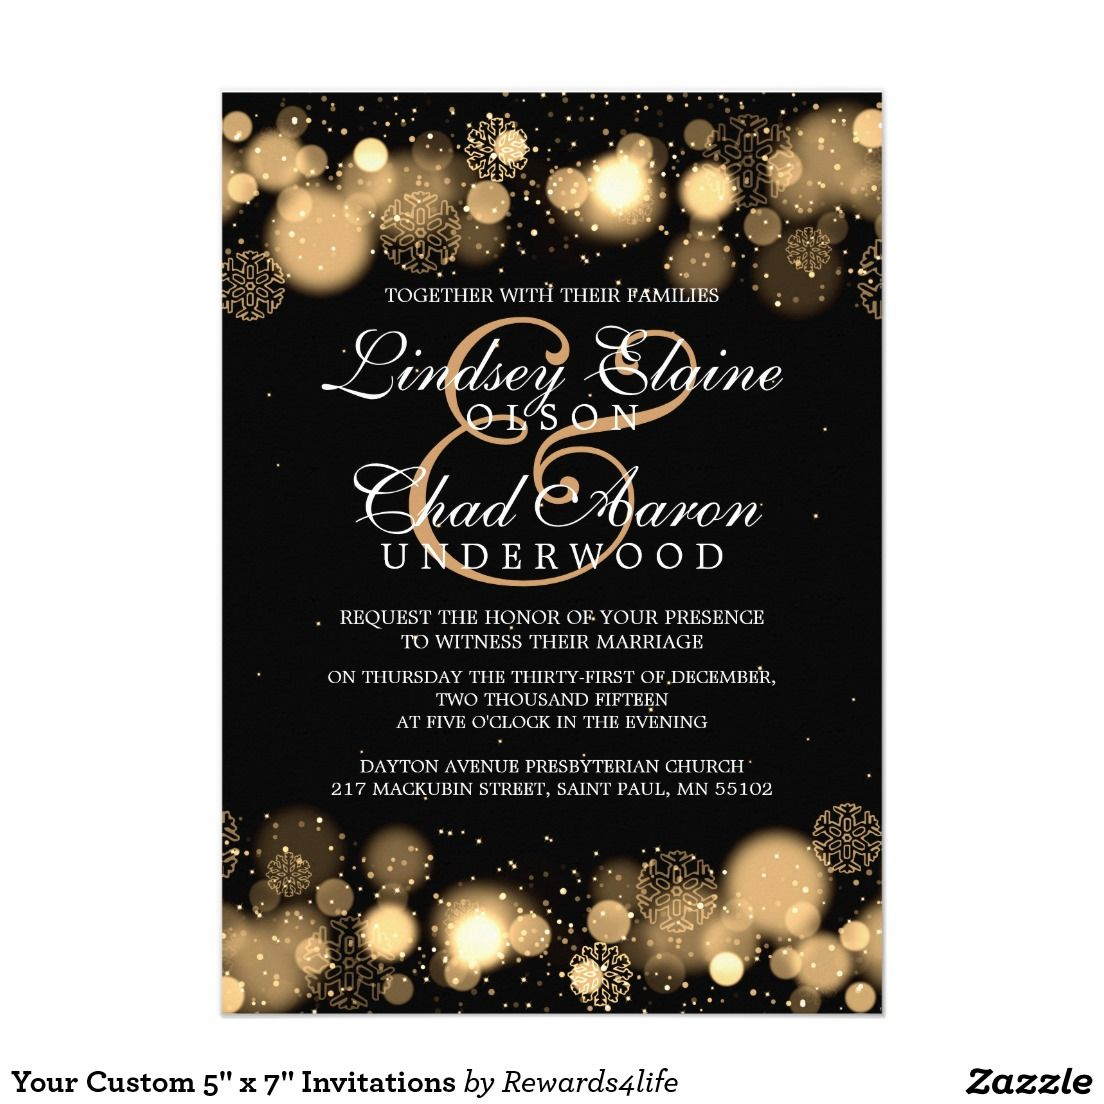 New Years Eve Wedding Invitations The Big Day A Nye Wedding 2015